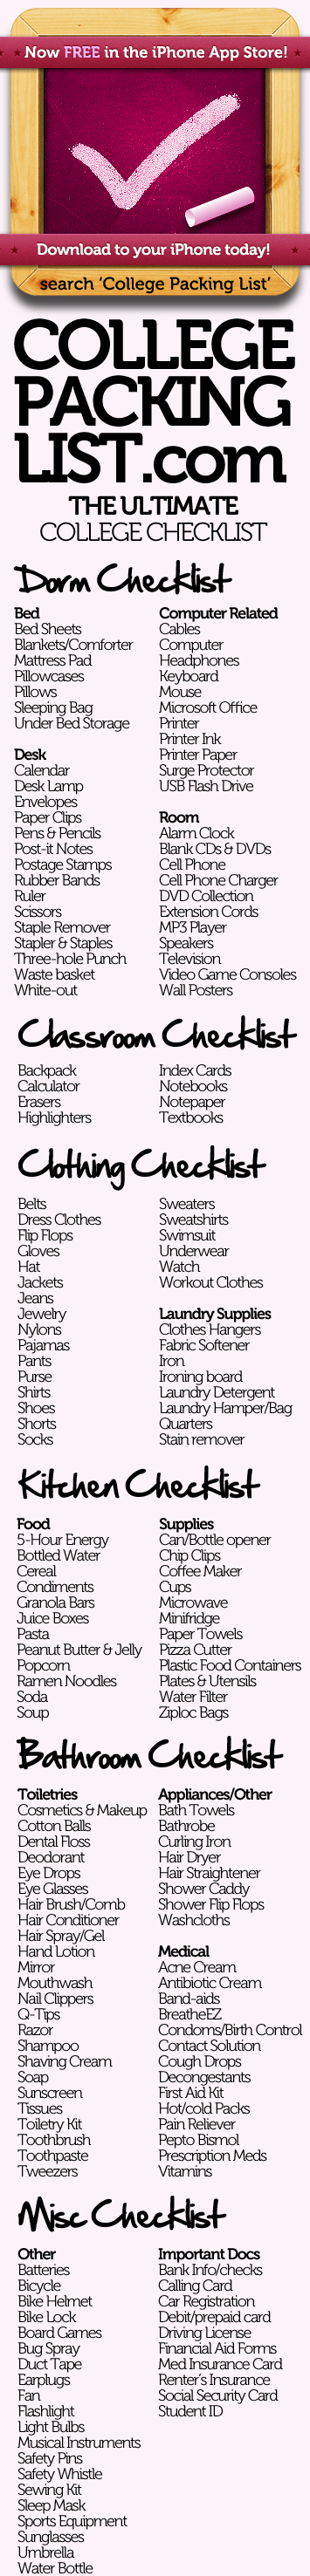 College Packing List - Your College Checklist